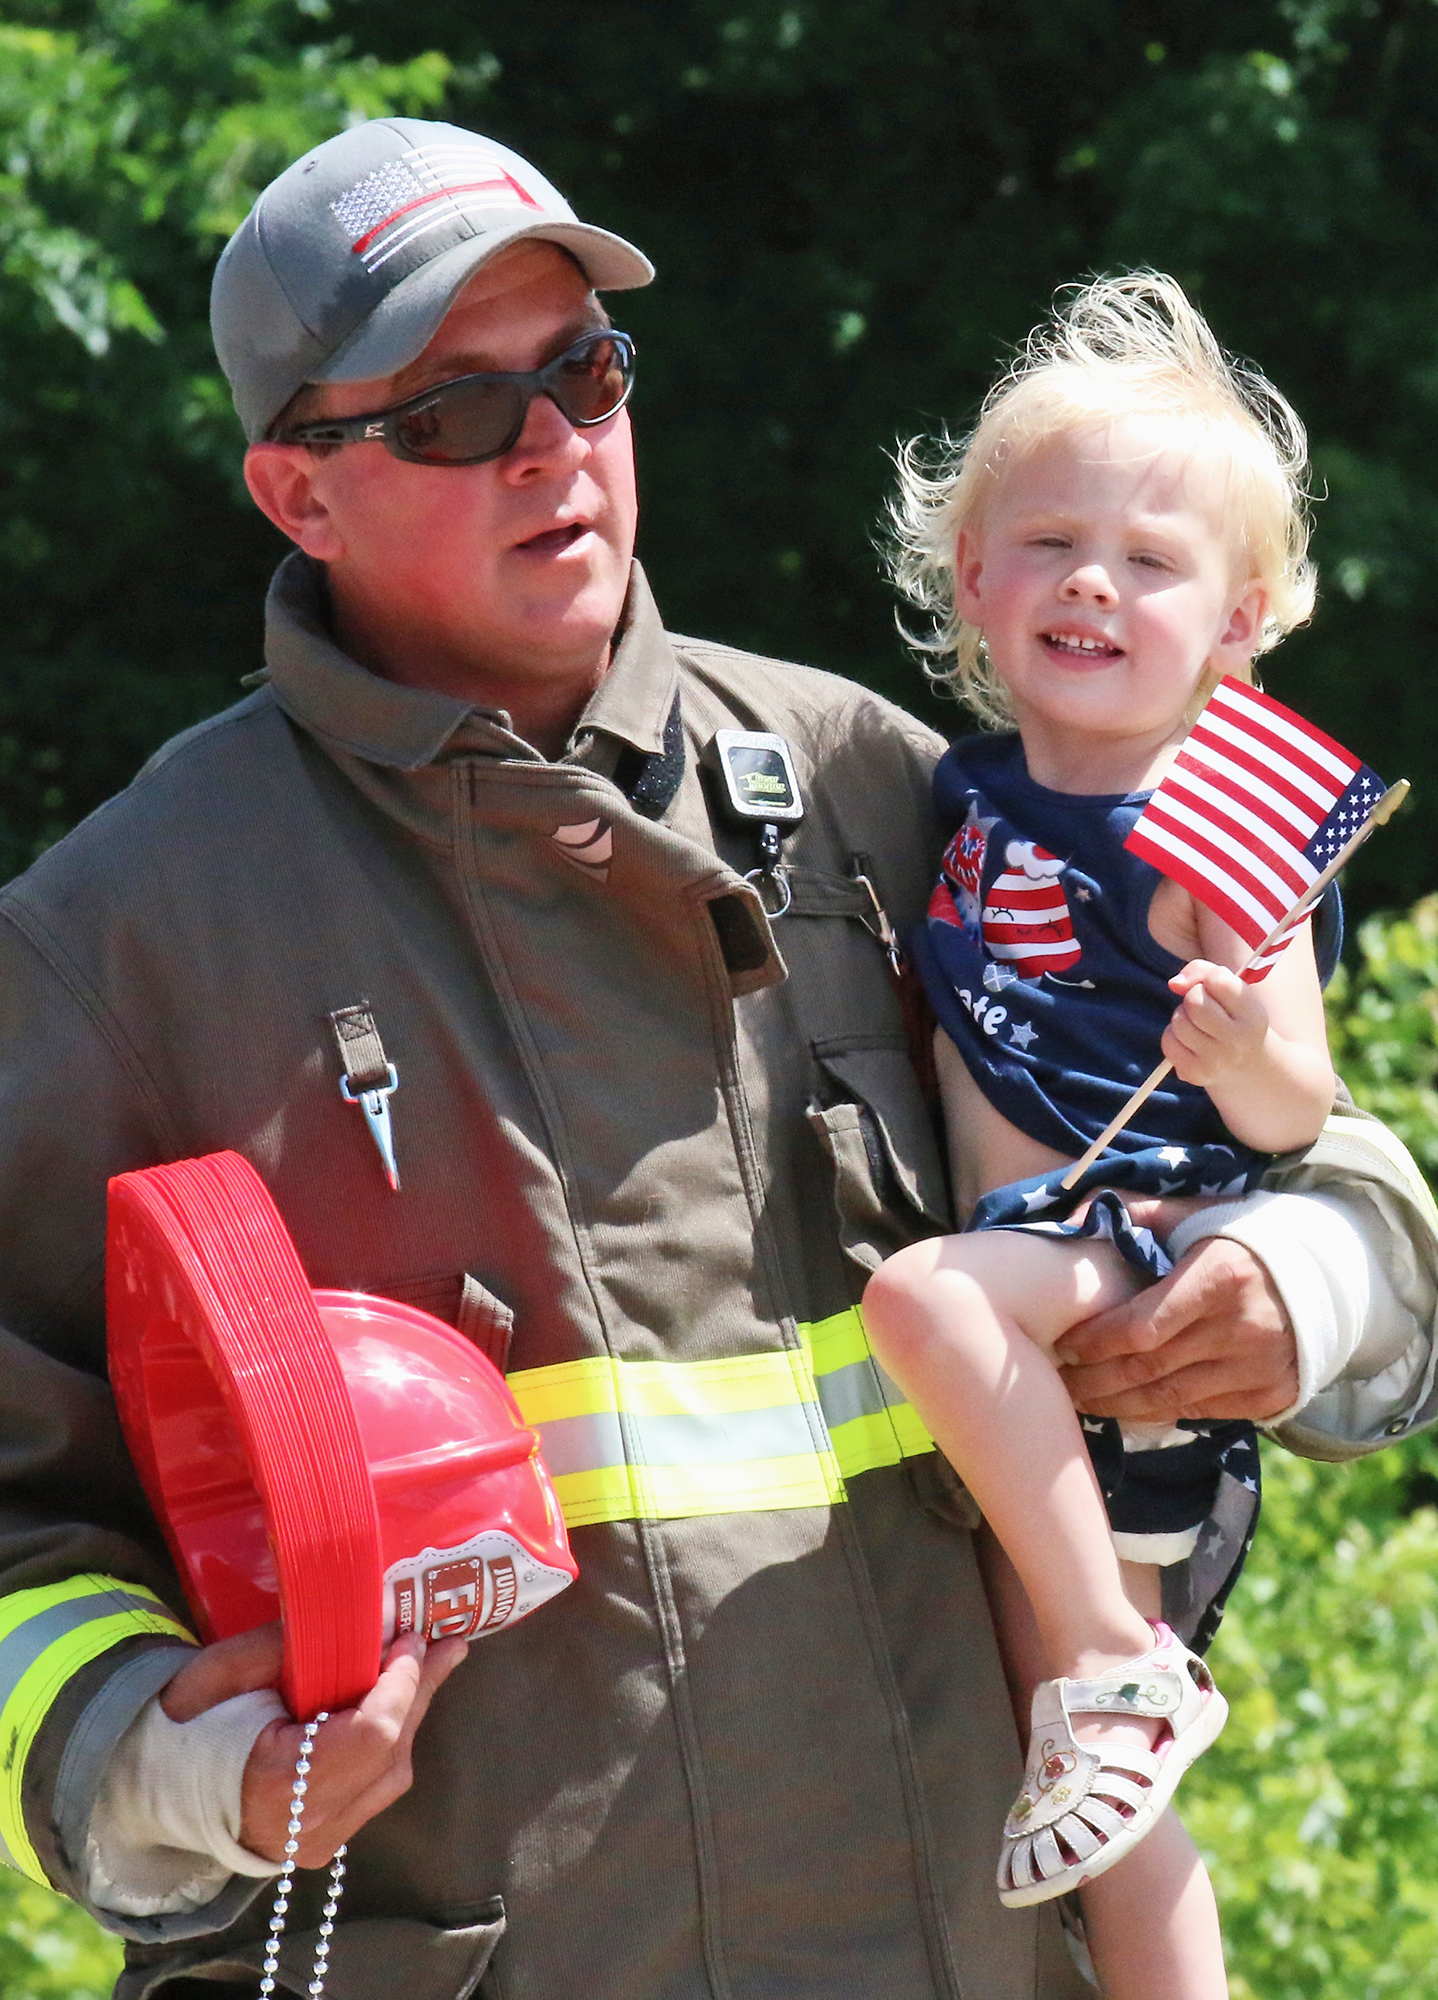 Shawn Hobbs helped daughter Holly Hobbs watch the parade after finishing their shift inside the Gresham Fire Department truck during the parade.Carol Ryczek | NEW Media